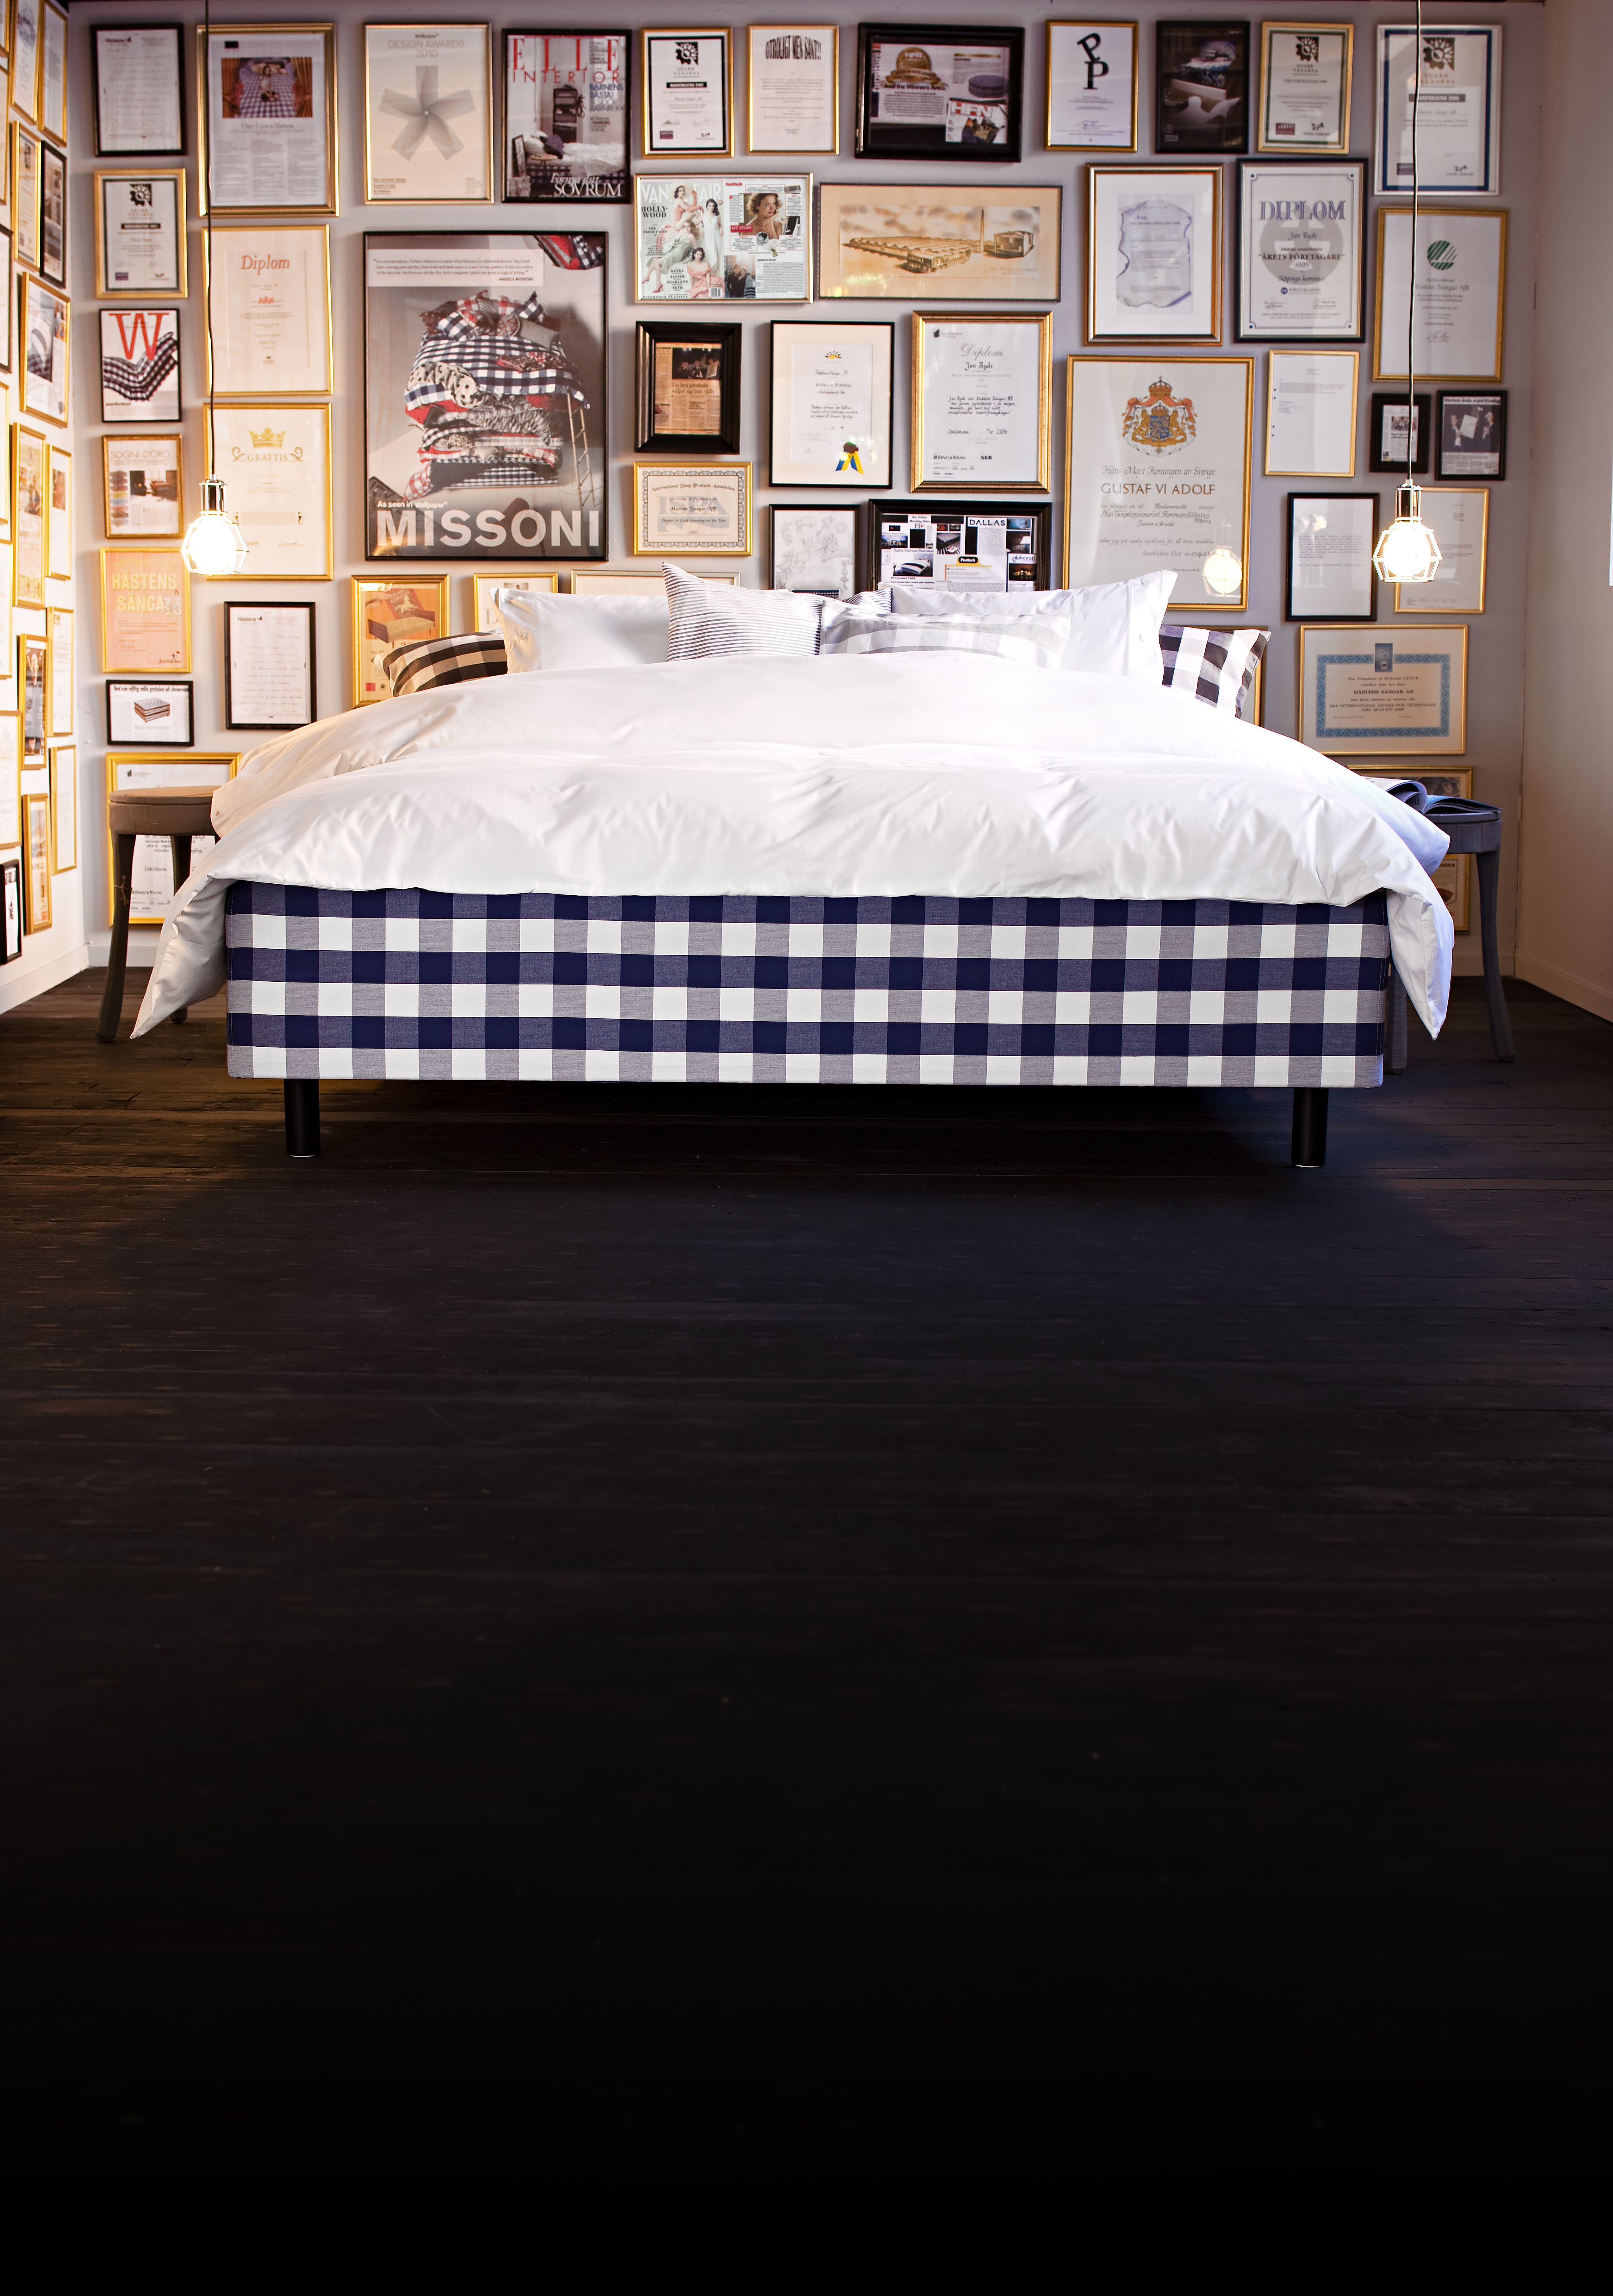 Hastens Best Bed campaign 2011 that makes you feel